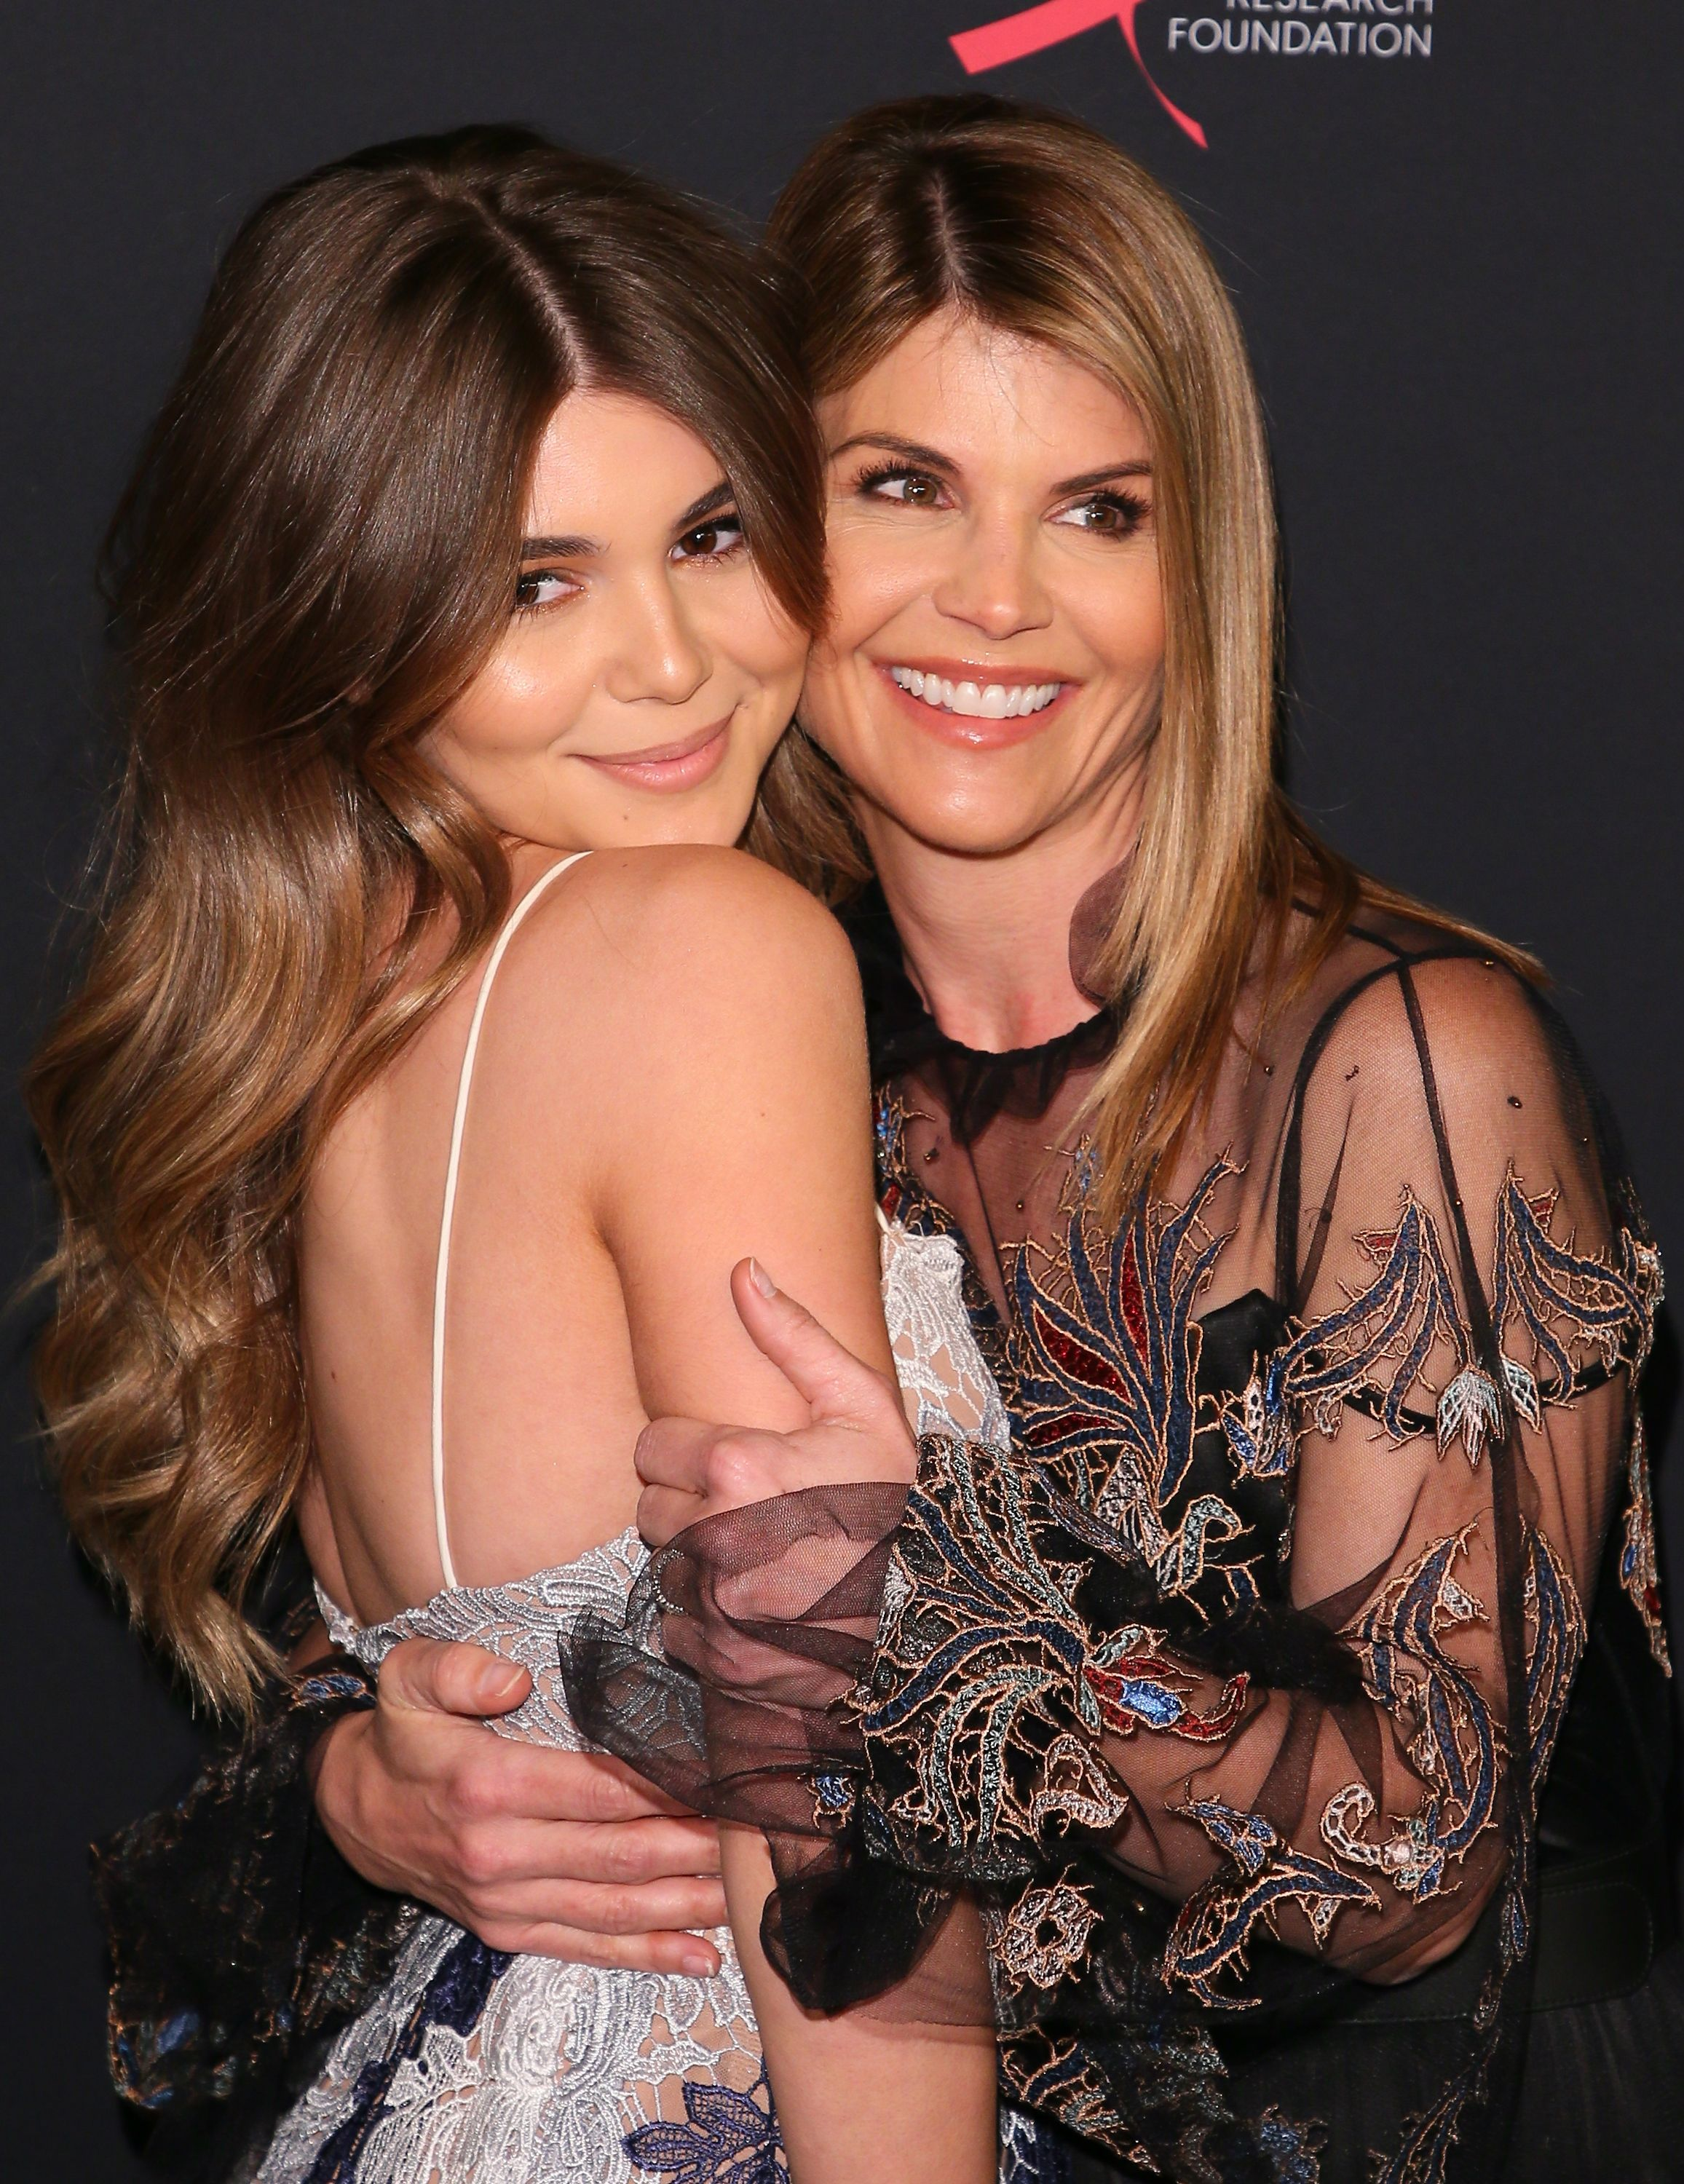 Lori Loughlin and Olivia Jade Reportedly Aren't Close Post-Scandal, but They're Working On It